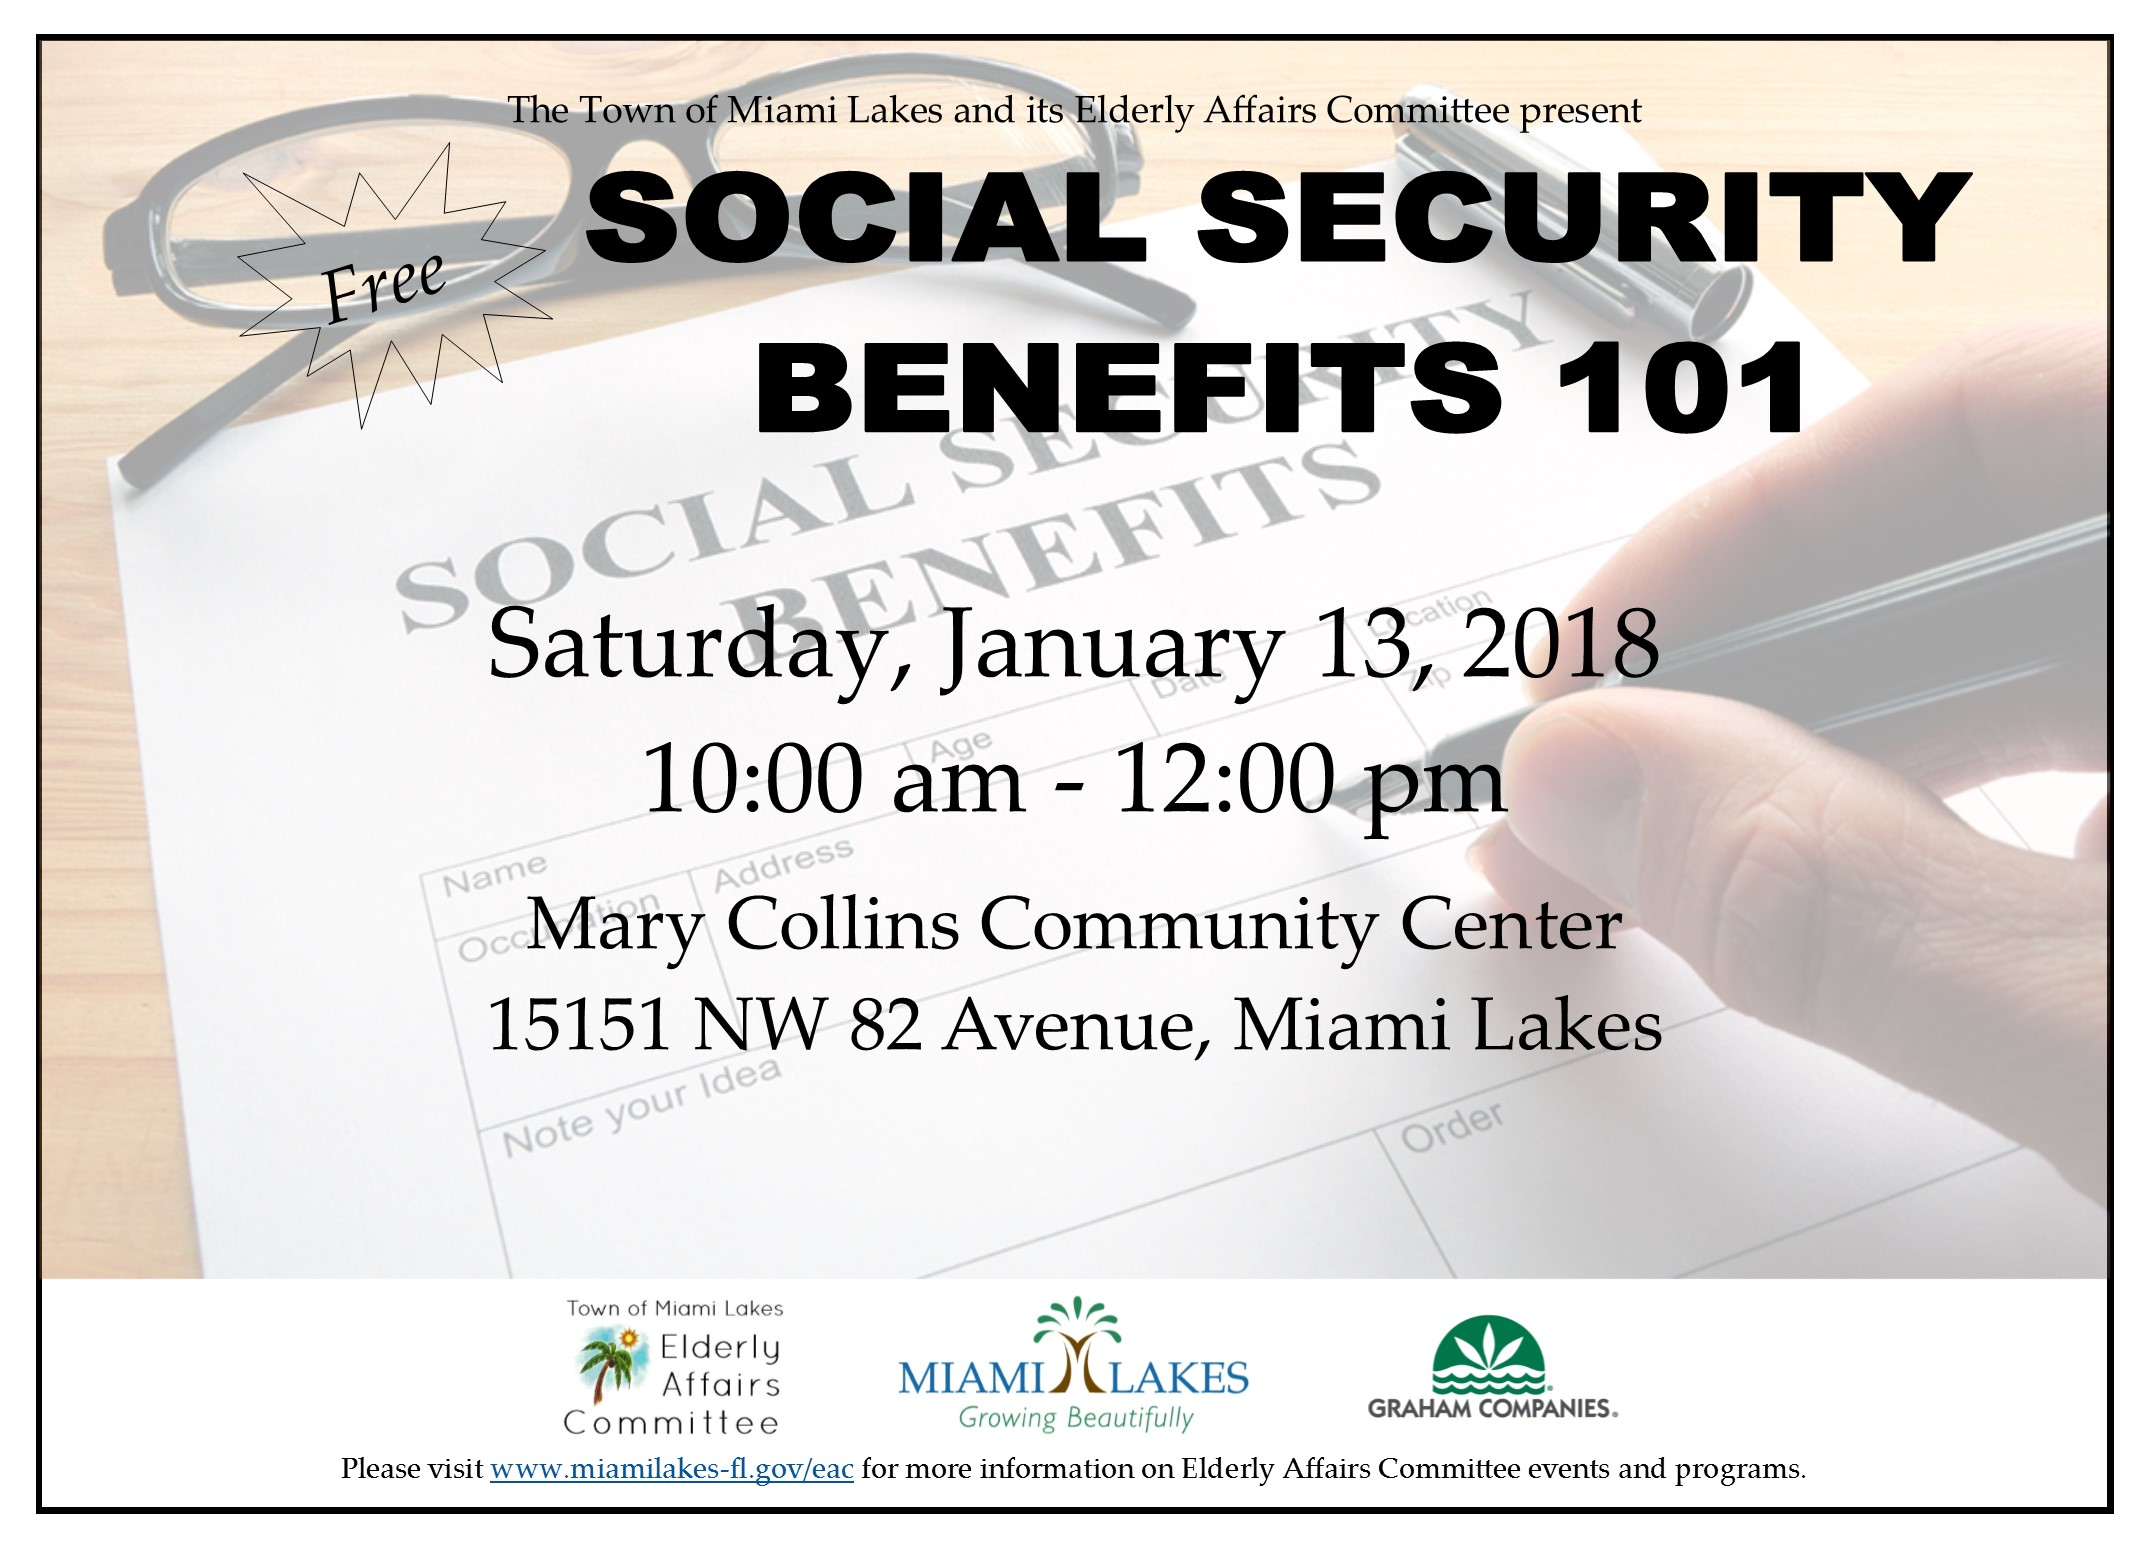 social security benefits 101 01.13.2018